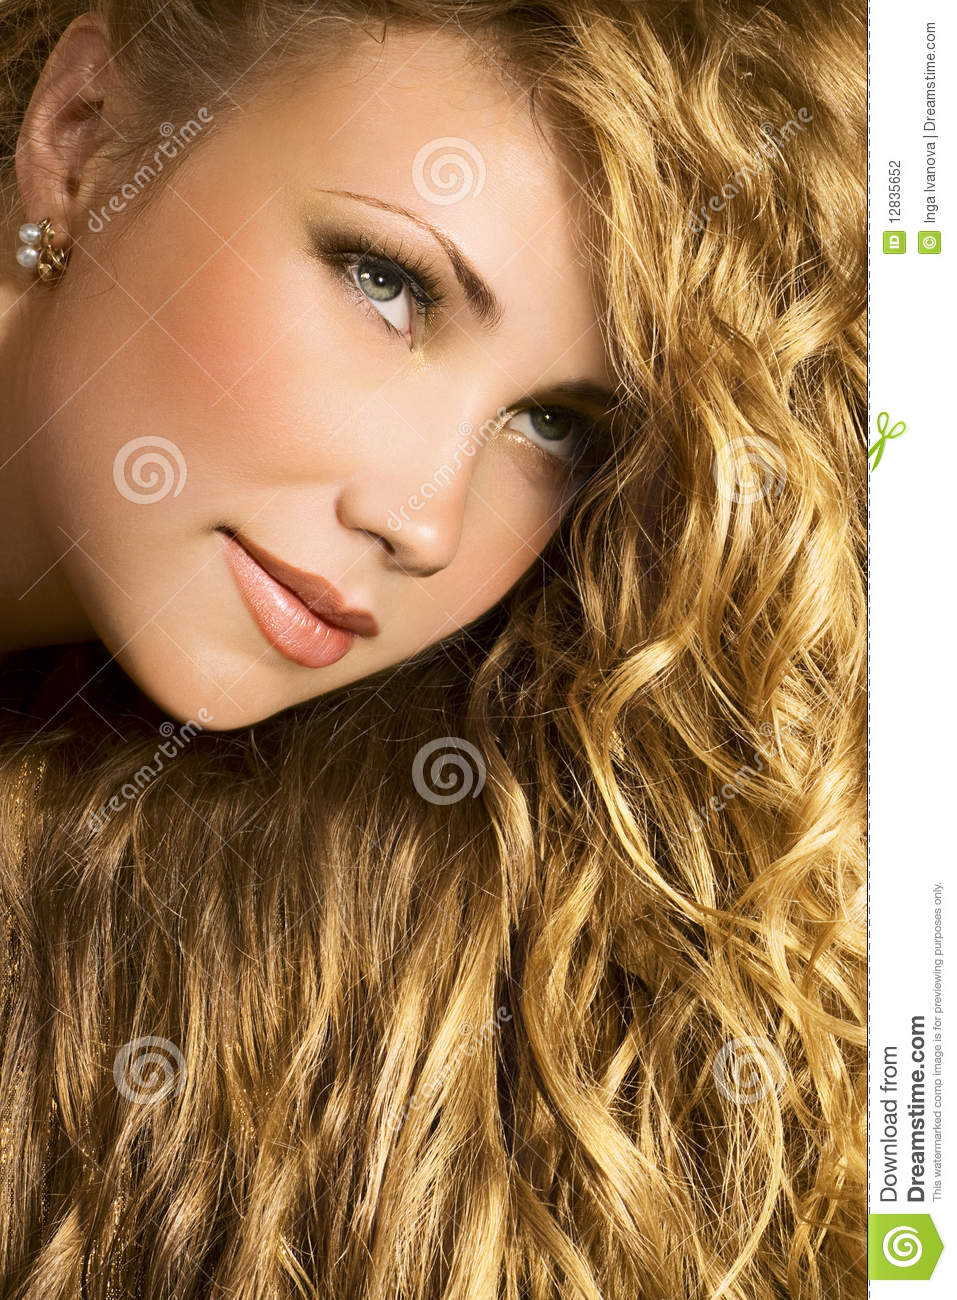 Golden Hair Stock Photo Image Of Hair Blonde Young